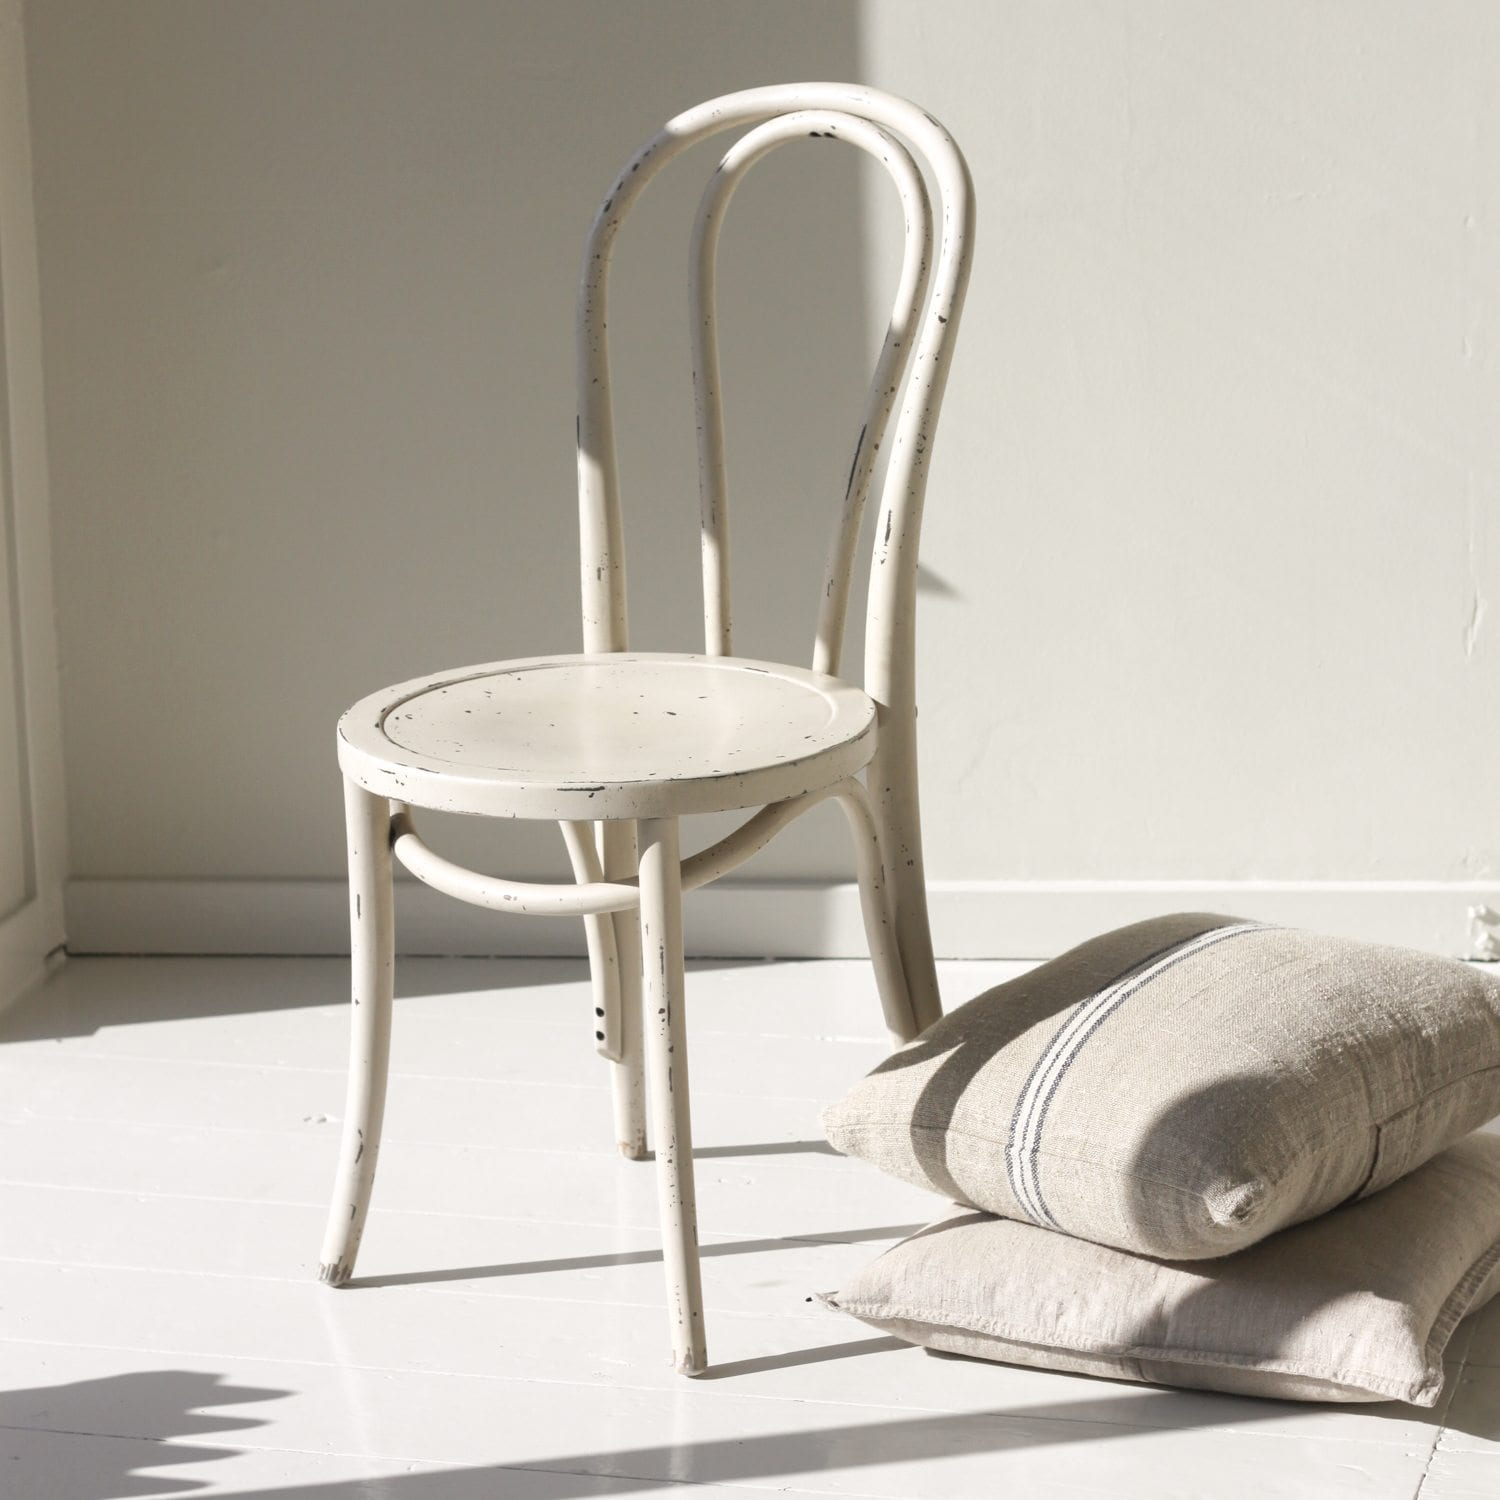 furniture at the by id sale for hans johannes seating hansen f wegner chair round armchairs z